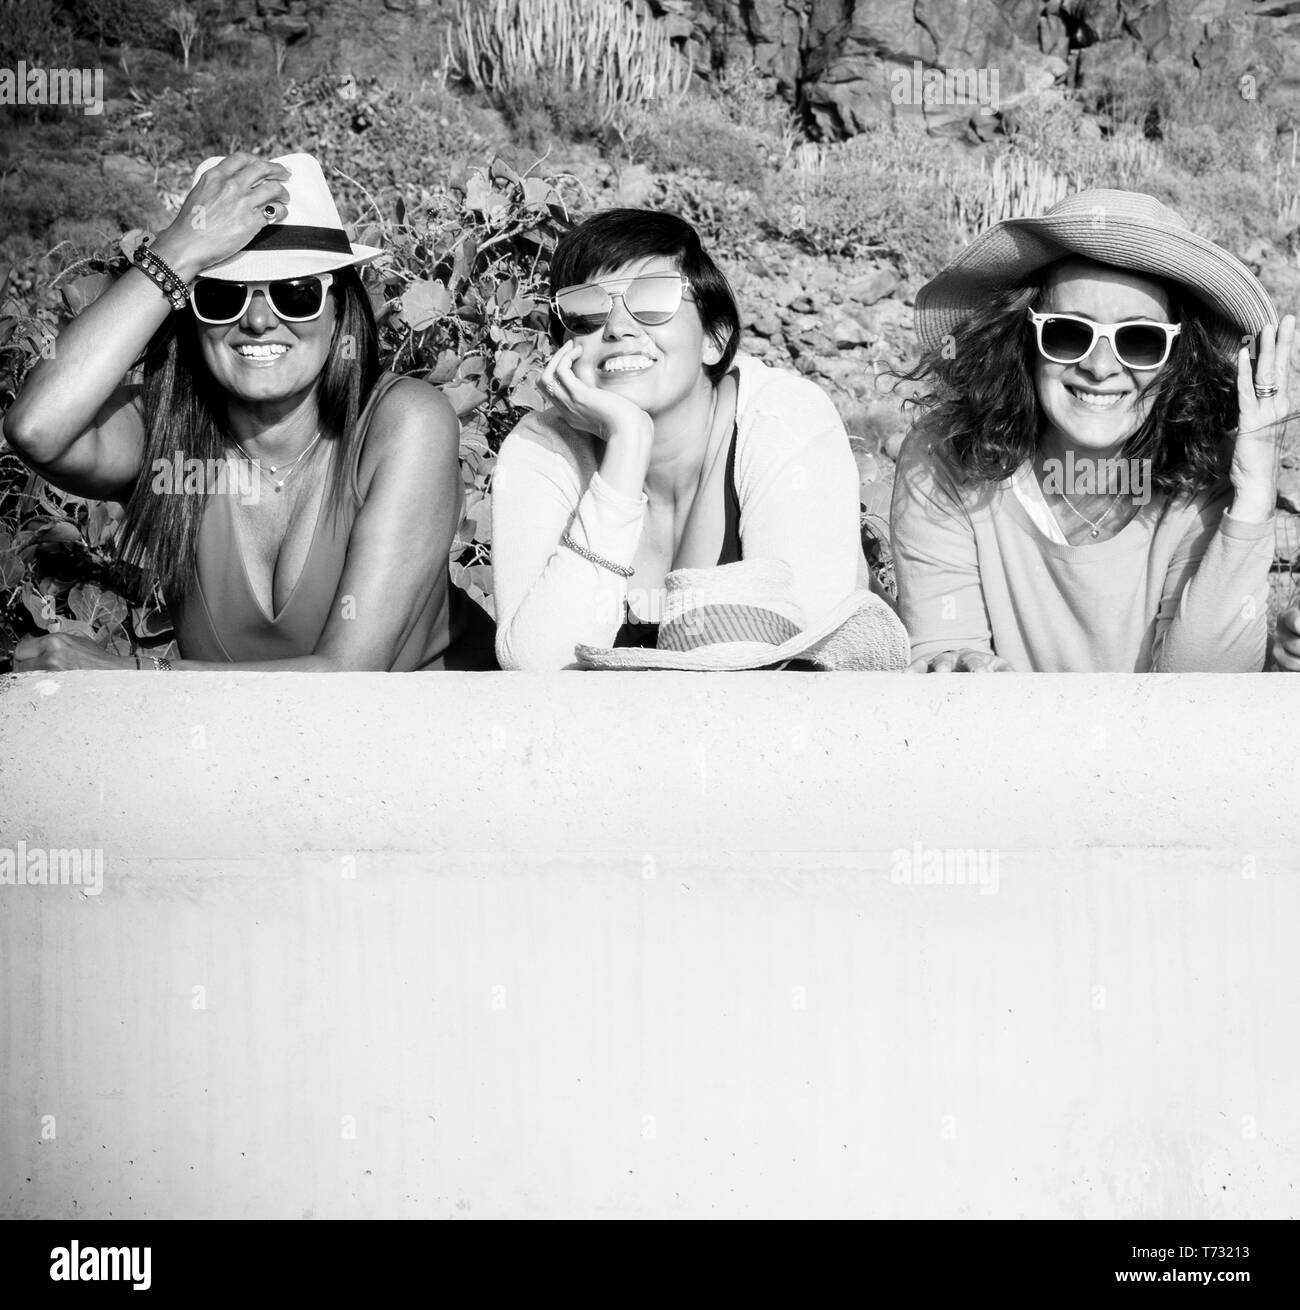 Black and white picture with three cheerful happy caucasian people young women smiling and looking at the camera in outdoor friendship activity - Stock Image